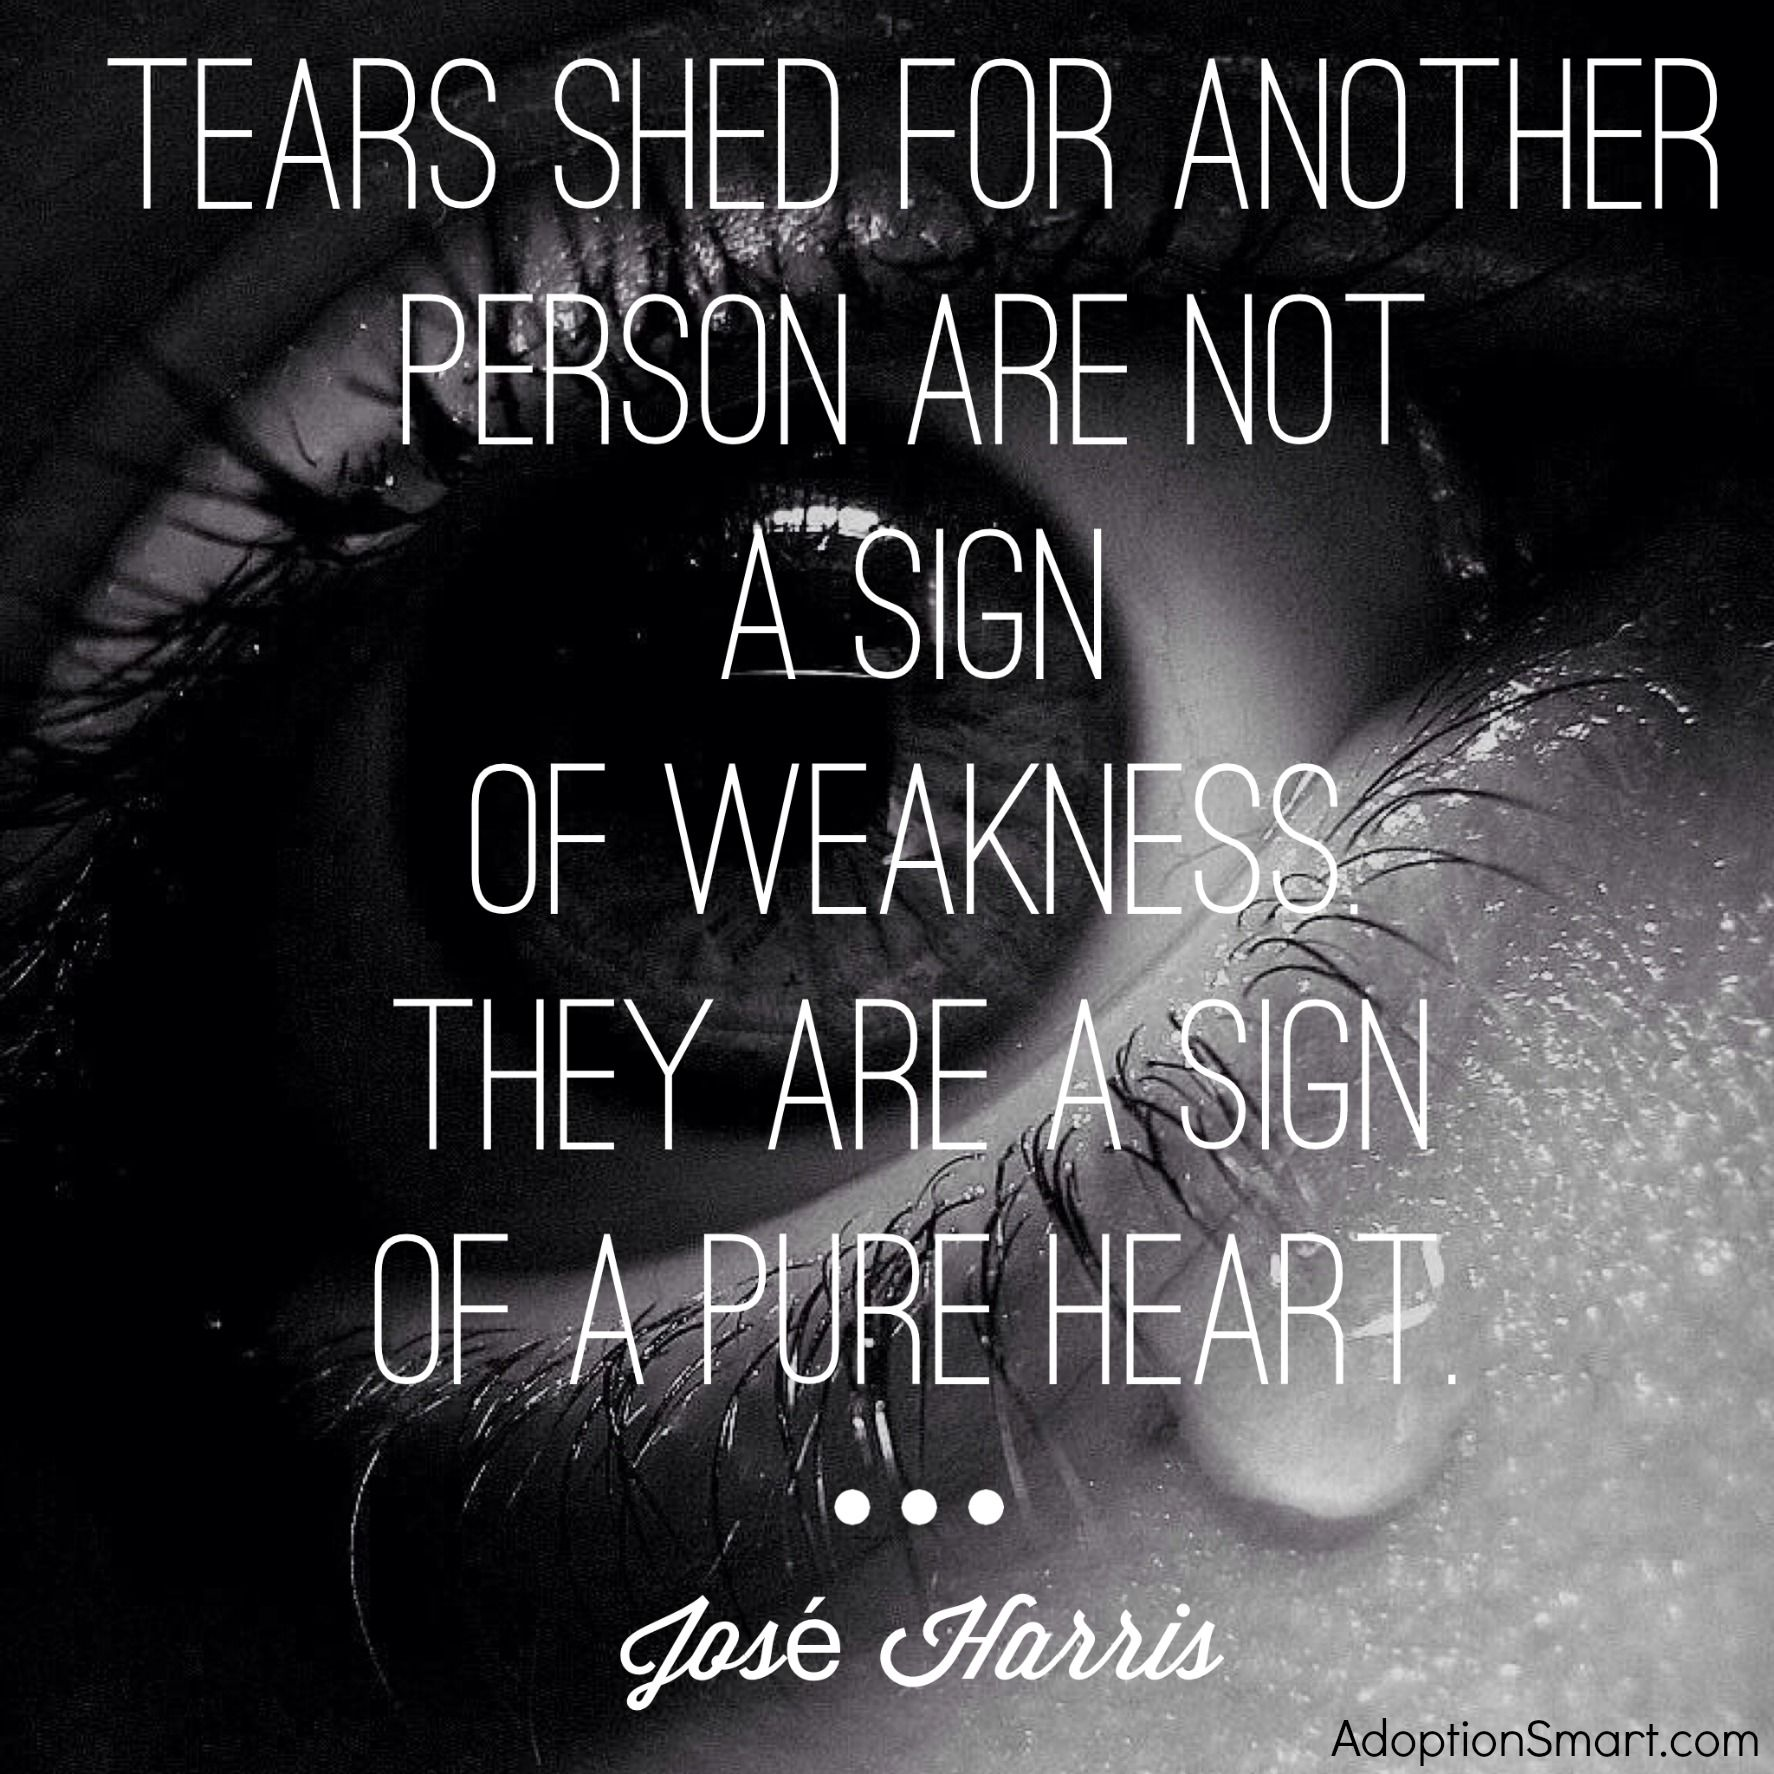 tears shed for another person are not a sign of weakness they are tears shed for another person are not a sign of weakness they are a sign